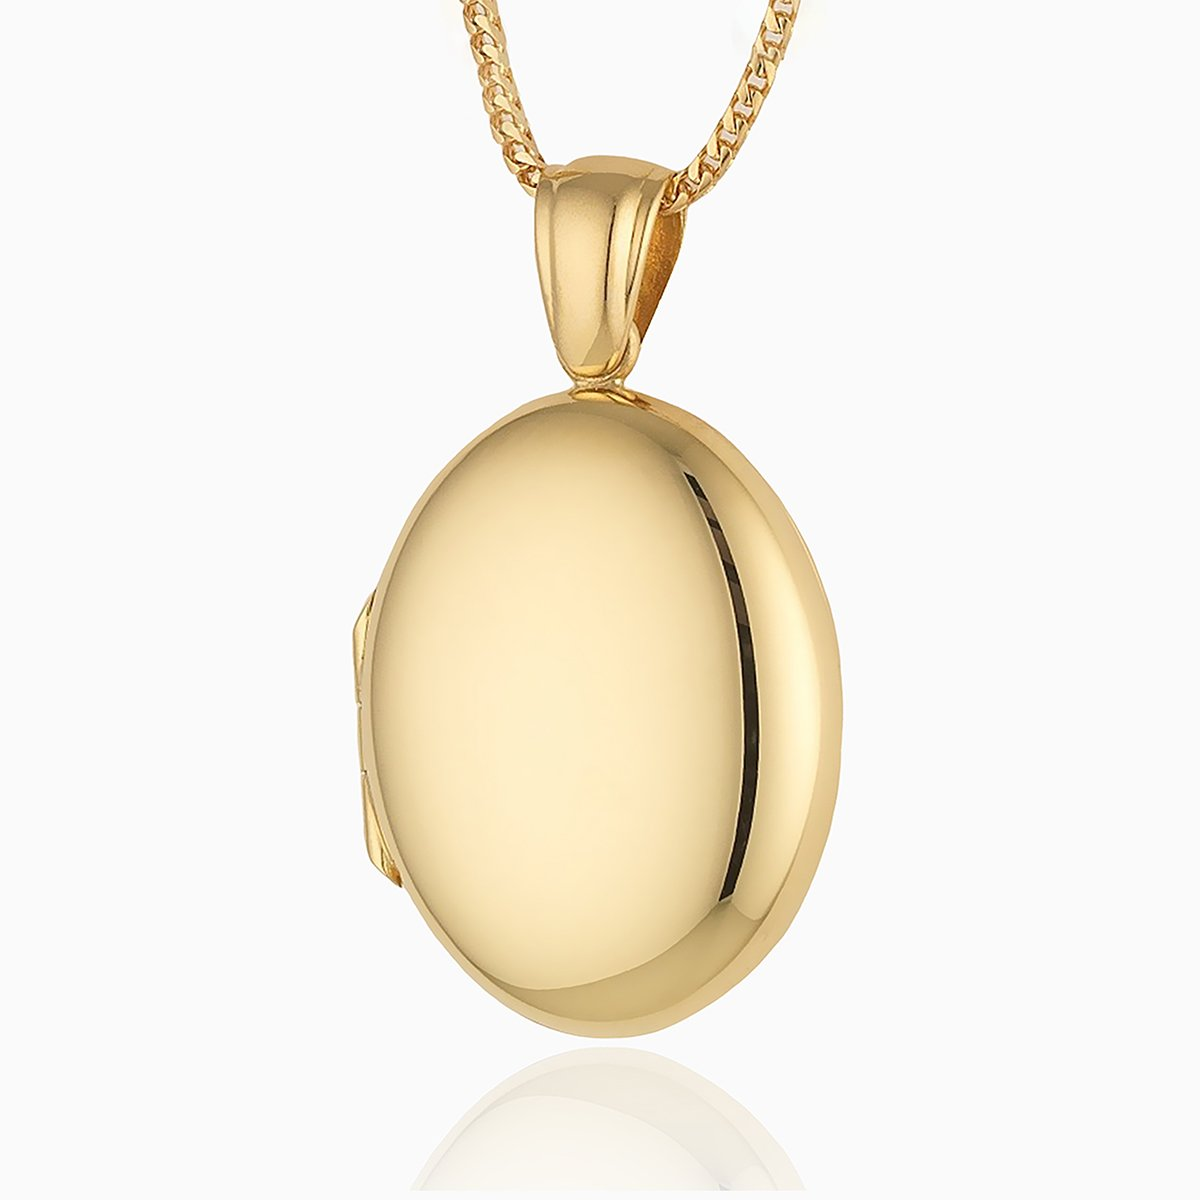 Product title: 18 ct Plain Polished Oval Locket, product type: Locket